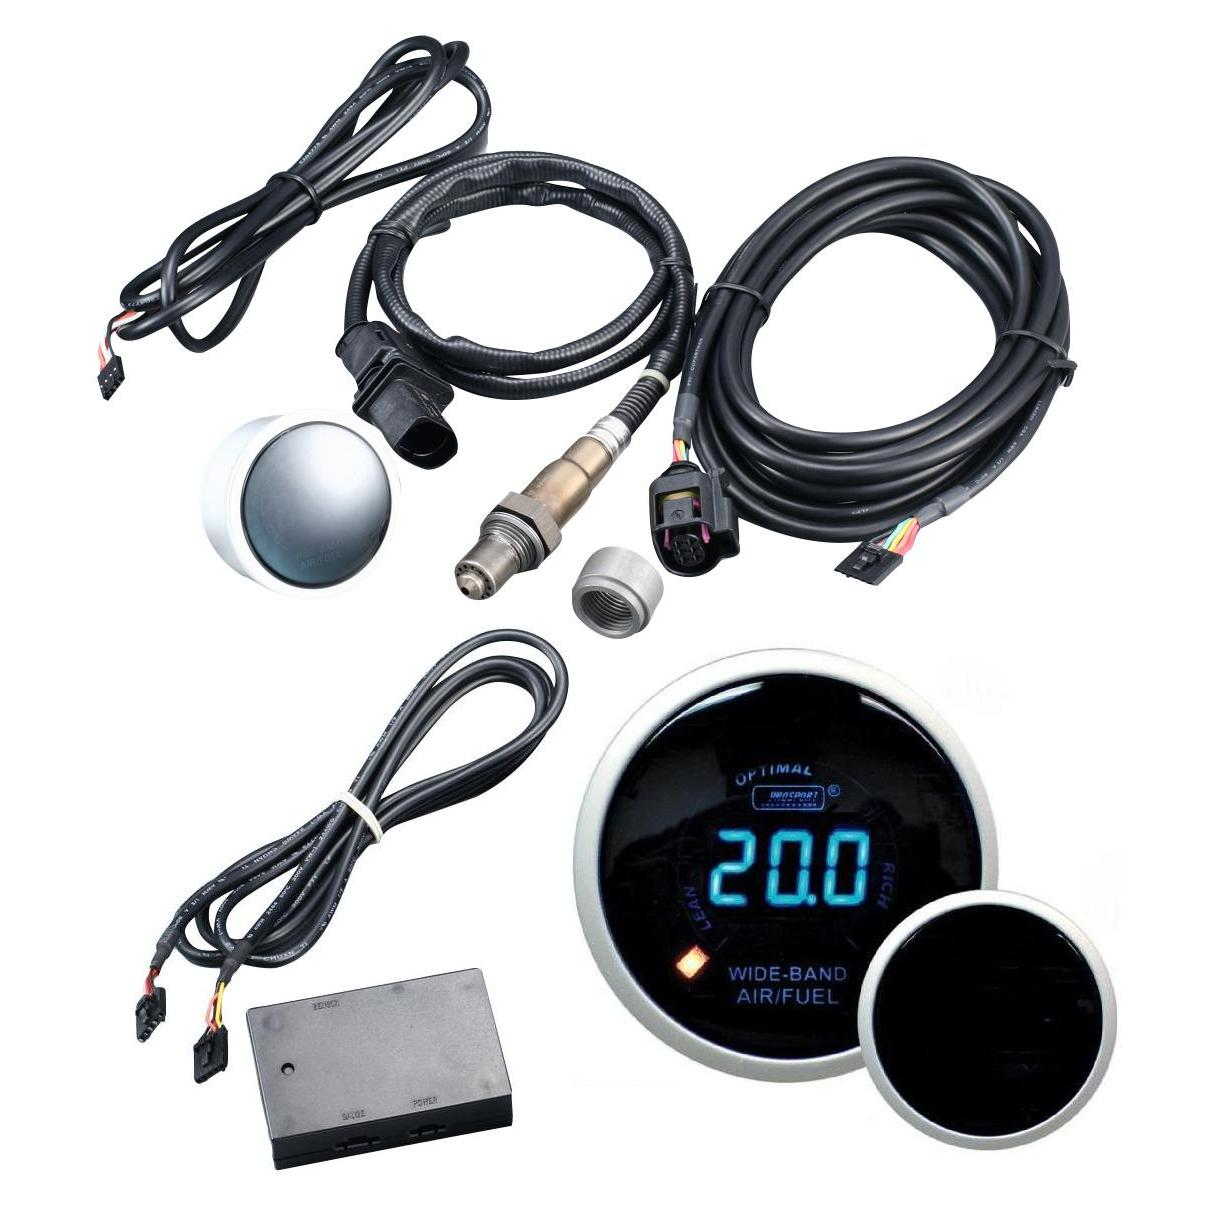 Prosport Dual Digital Wideband Air/Fuel Ratio Kit